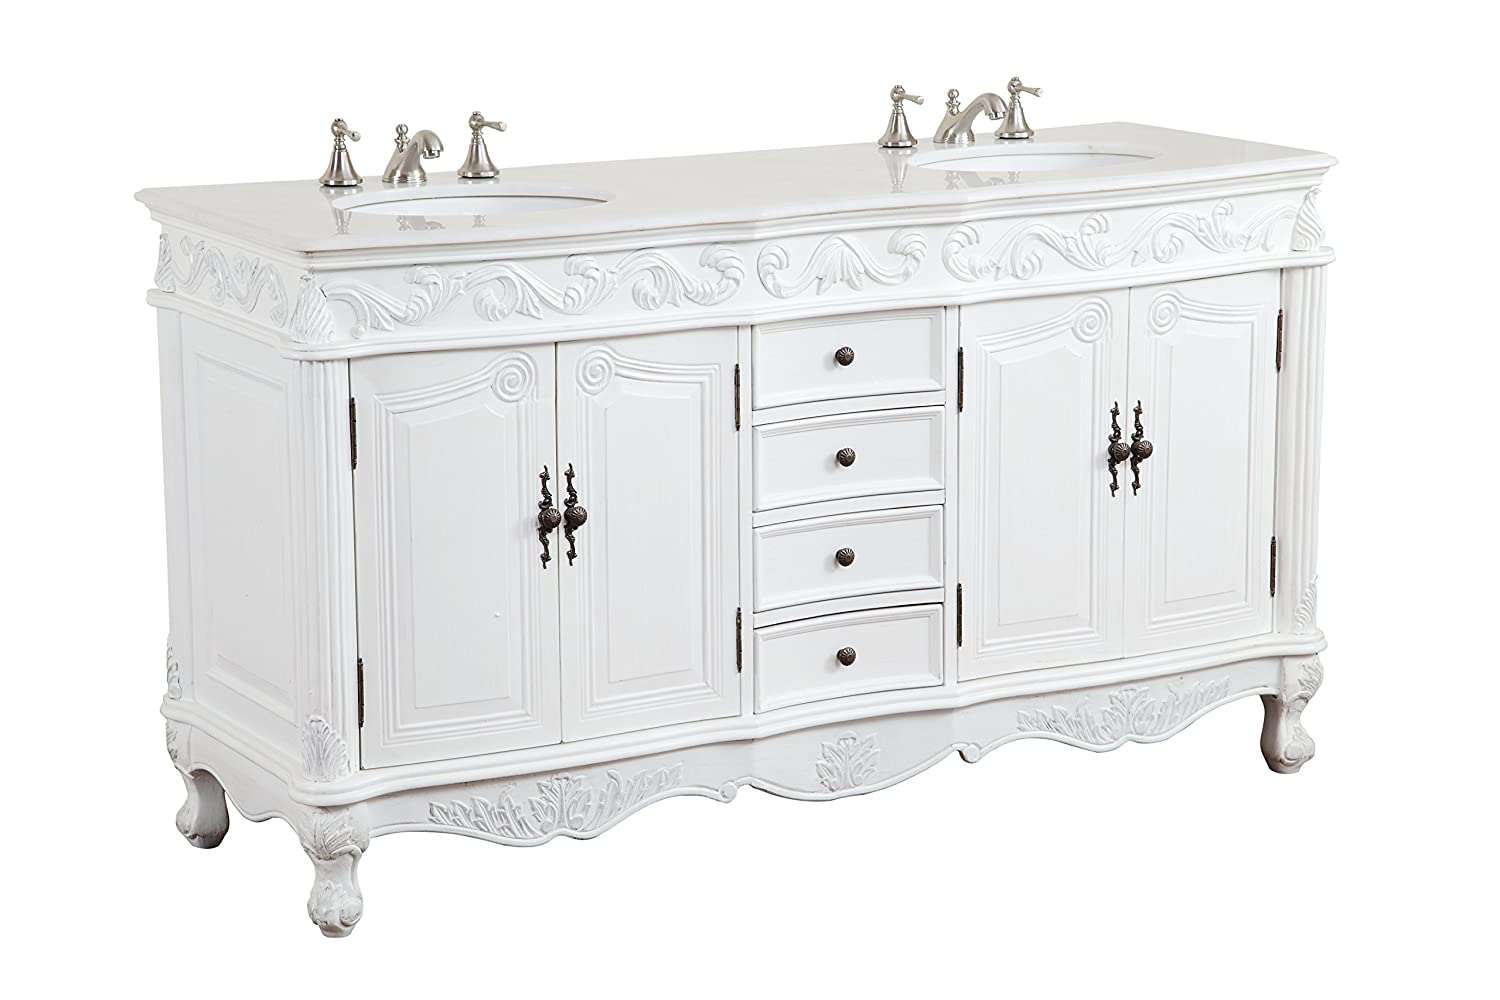 72 Antique white Classic Beckham Bathroom sink vanity Model CF-3882W-AW-72